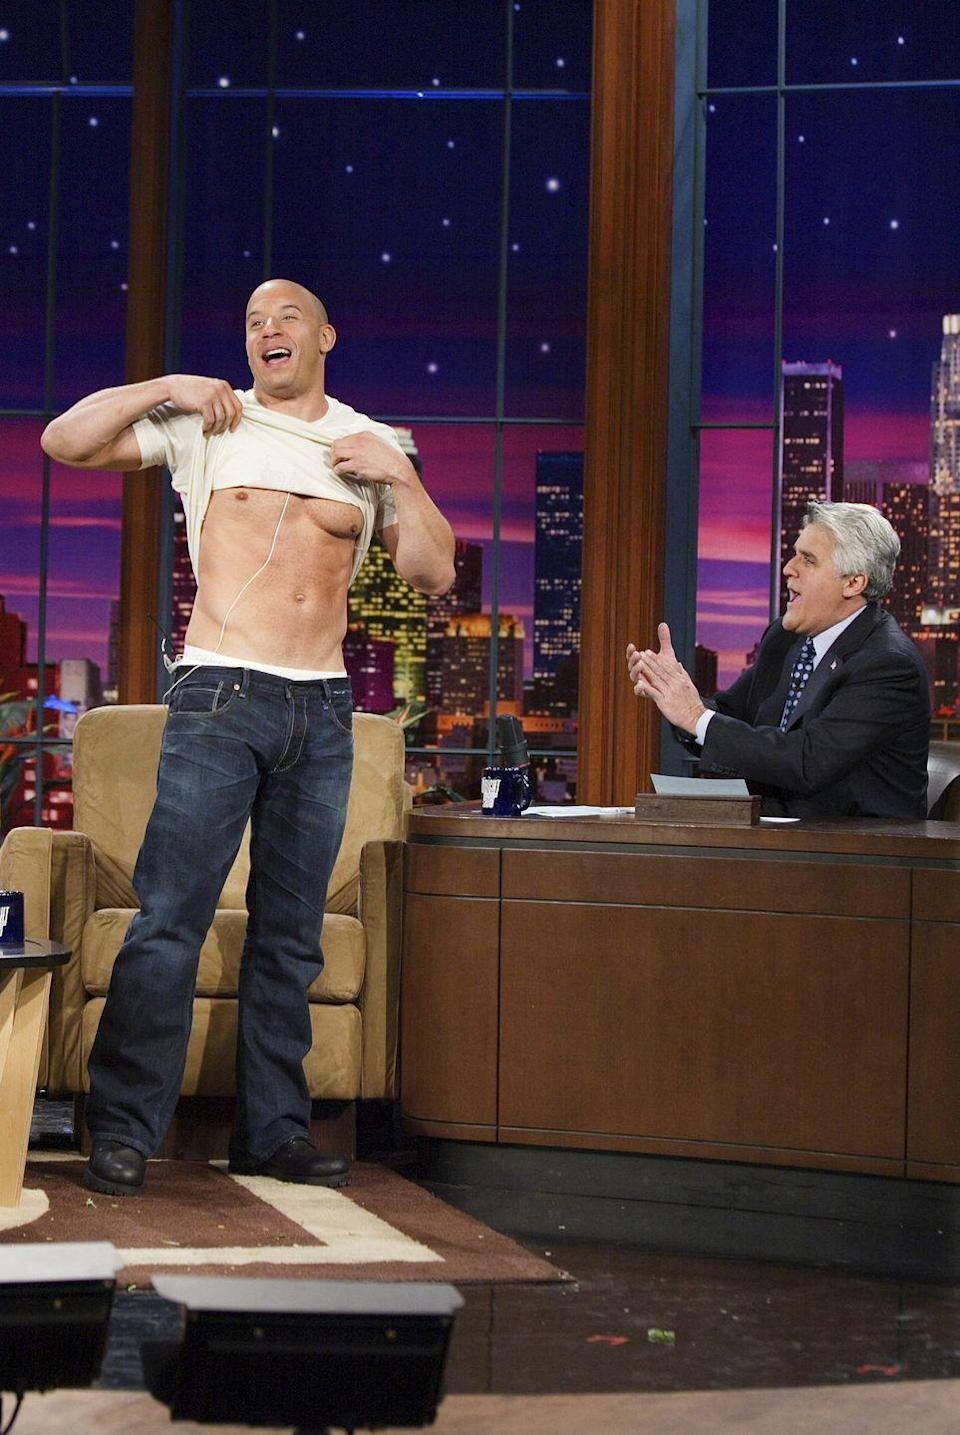 <p>Action star Vin Diesel was so eager to show the audience of <em><em>The Tonight Show with Jay Leno</em></em> his chiseled form, that the <em>Fast & Furious</em> actor stood up and lifted his shirt during his interview in 2006.</p>